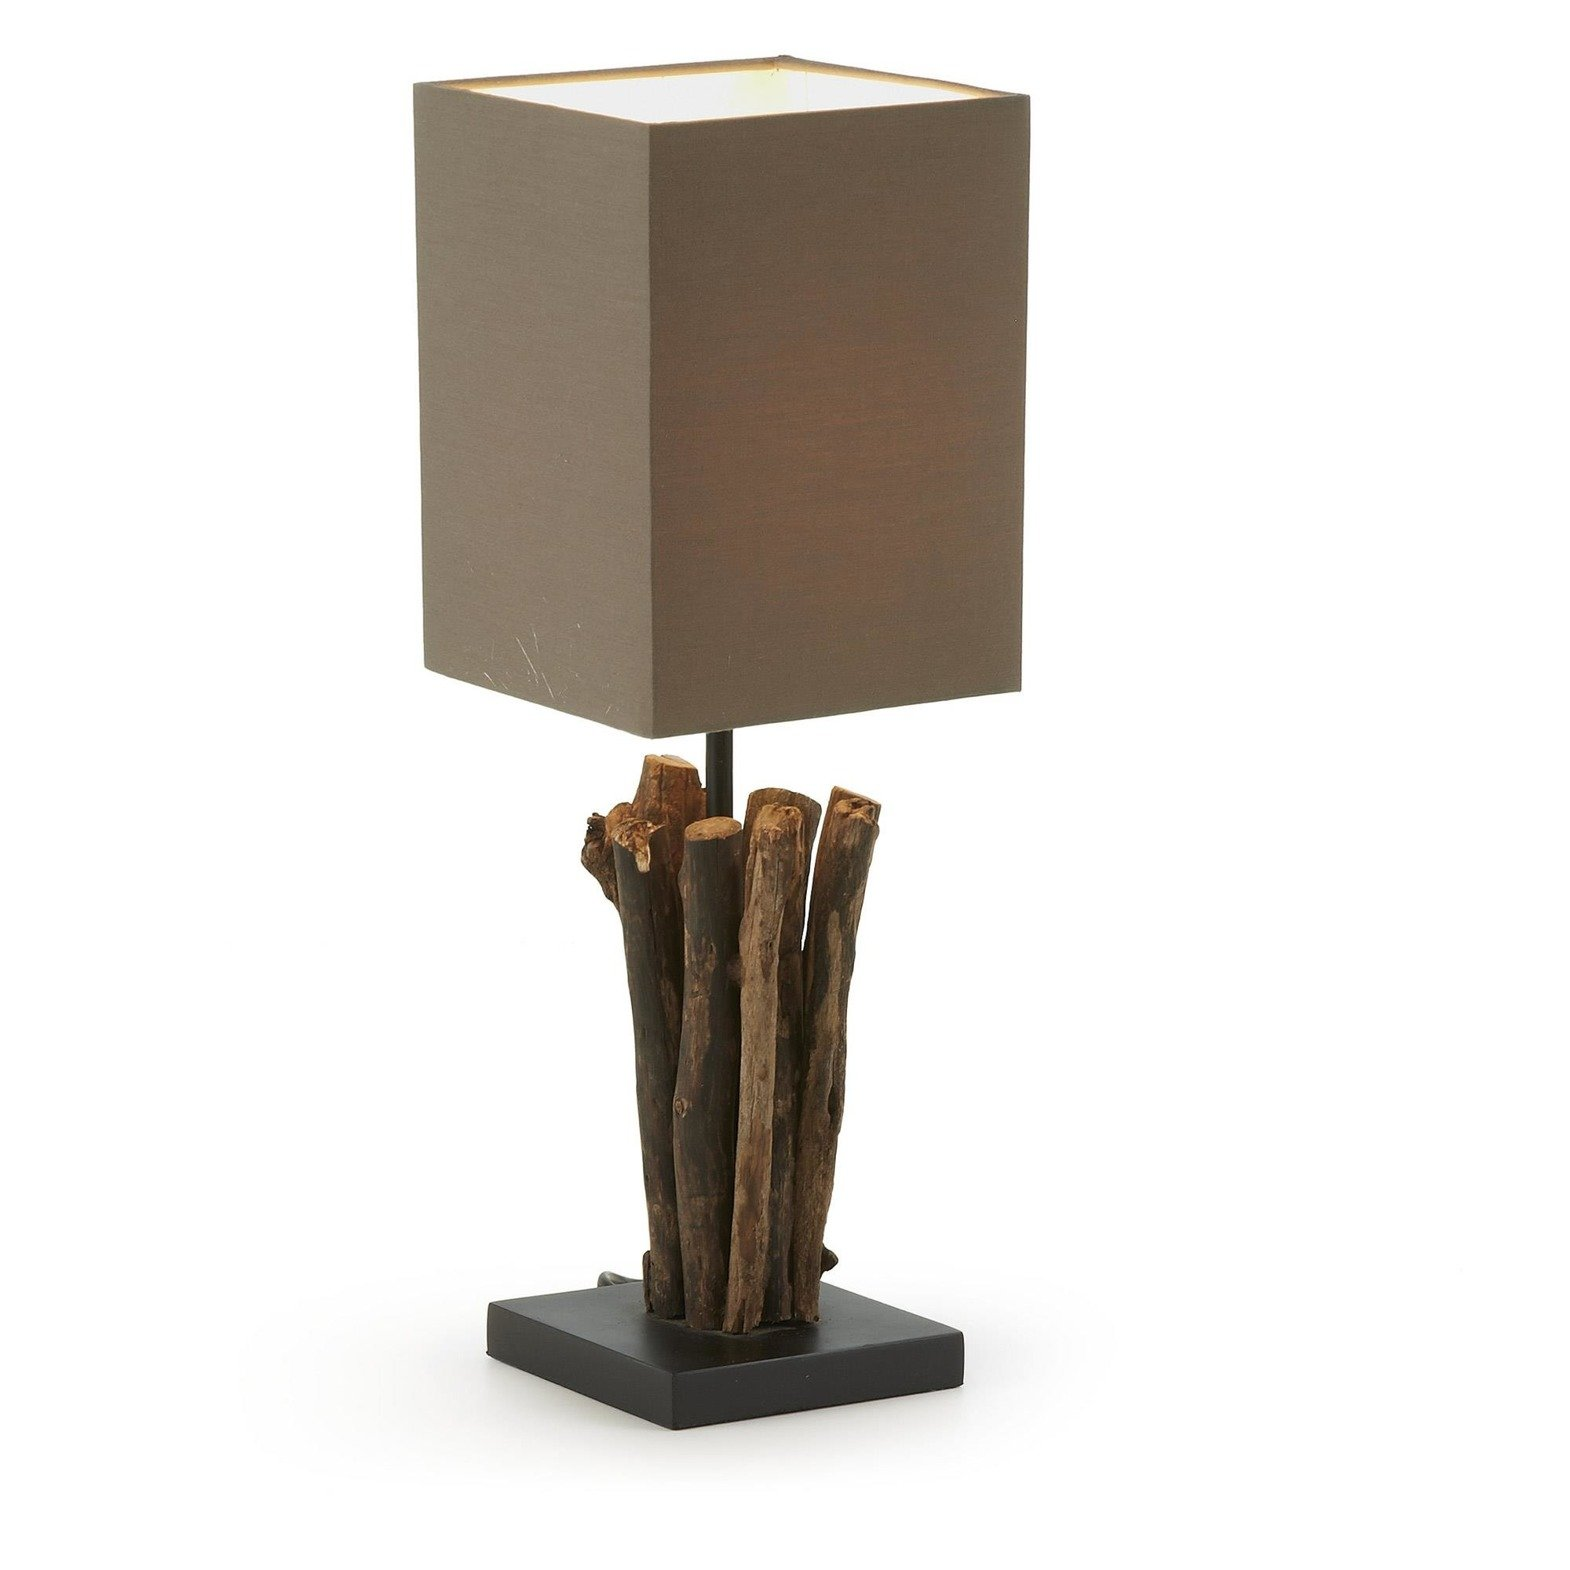 Dulciana Table lamp shade tropical wood brown